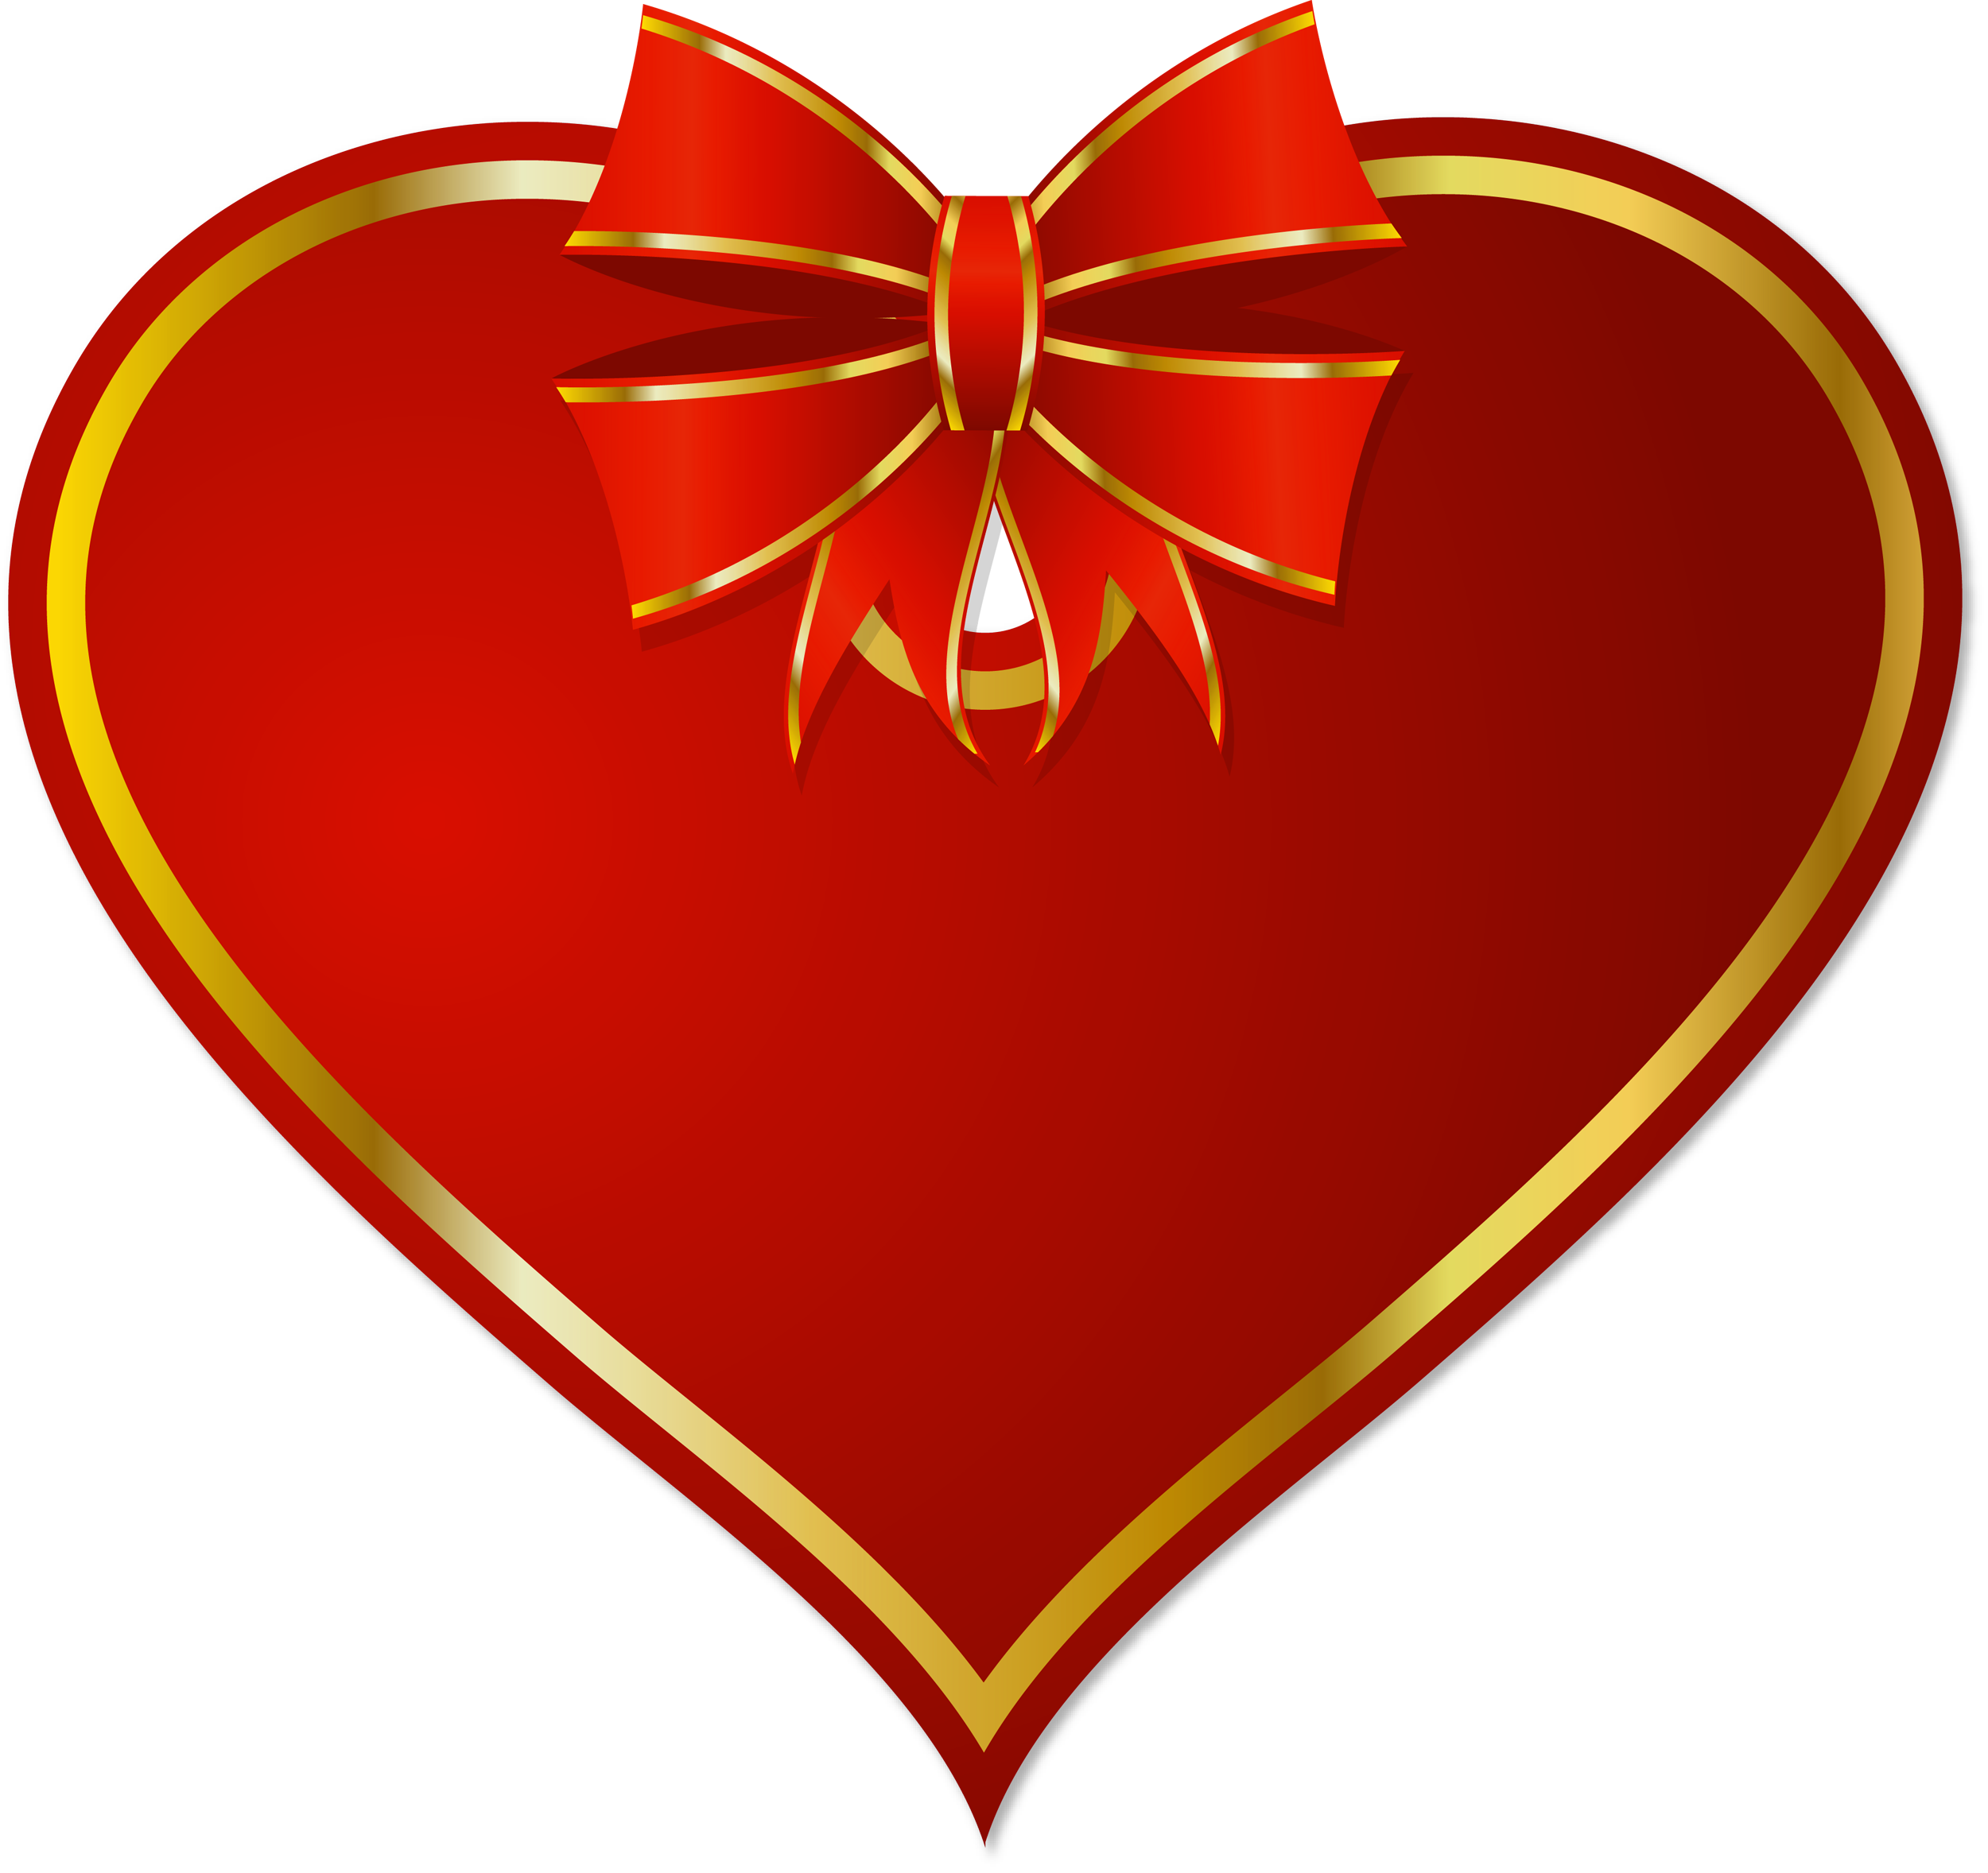 Red png heart with. Hearts clipart scrapbook